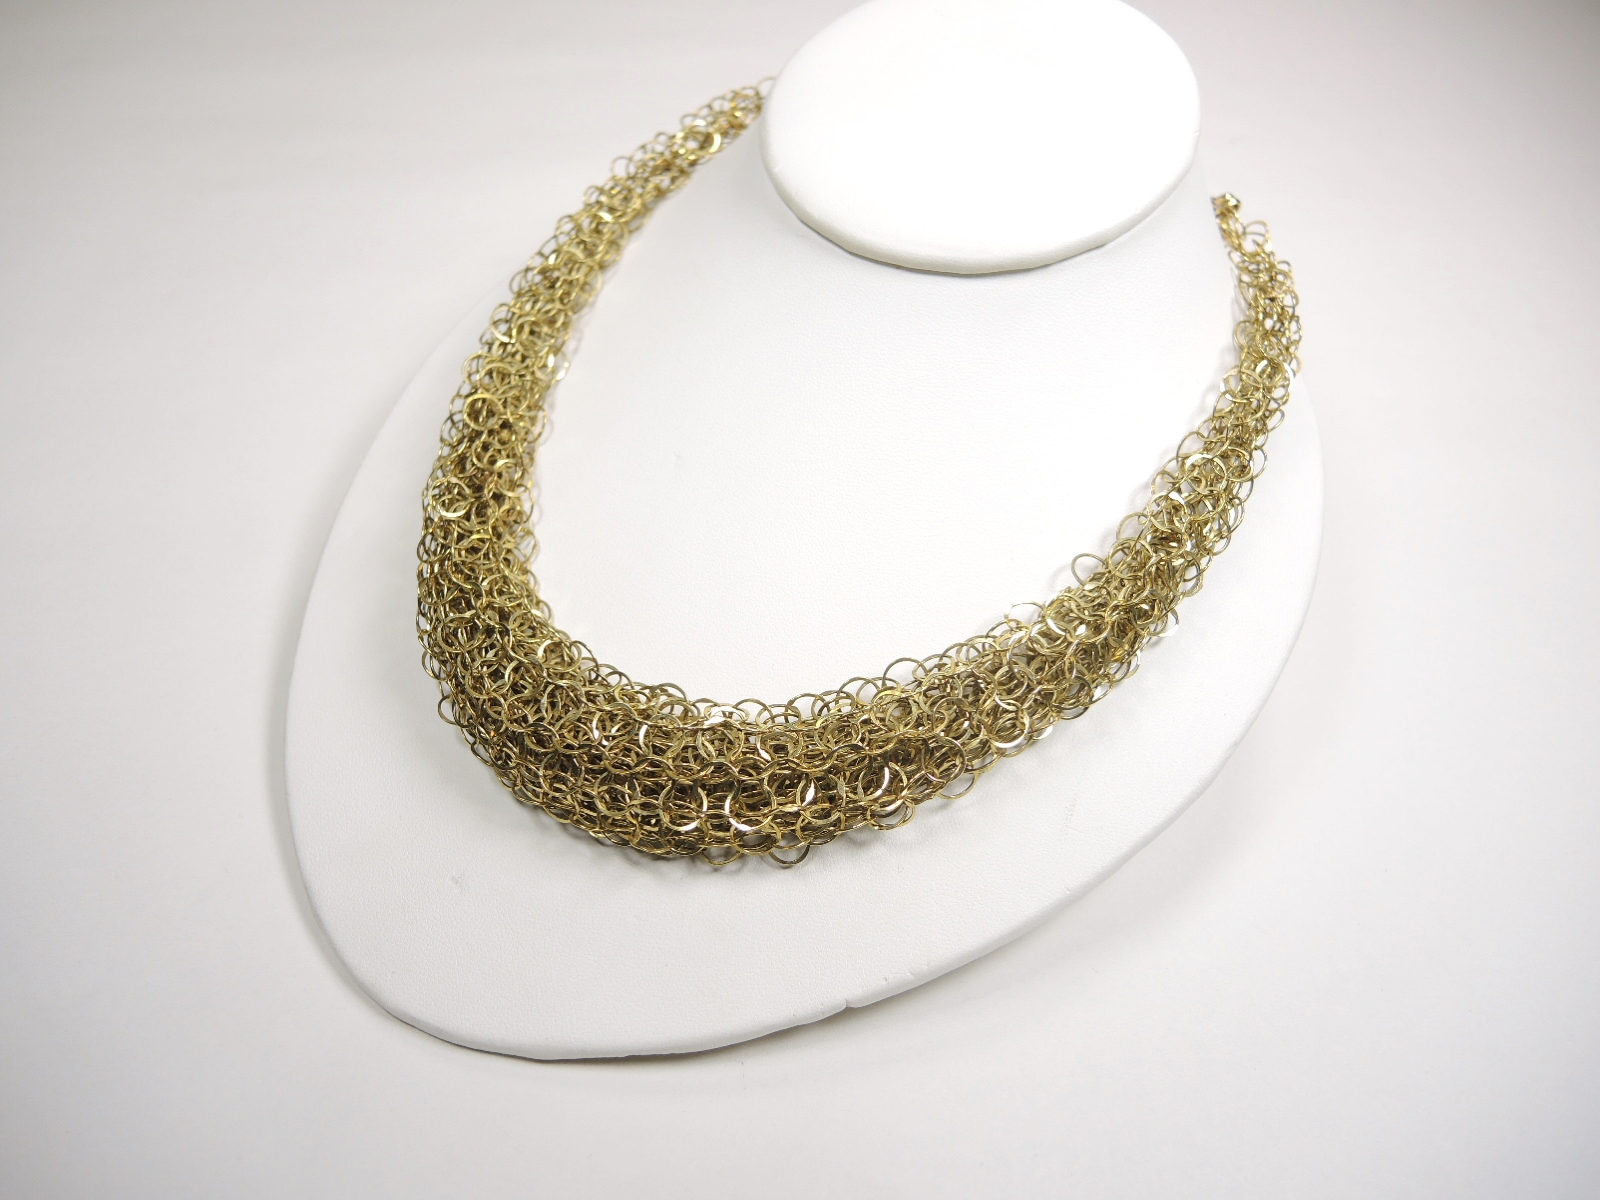 Jewelry & Watches Necklaces & Pendants The Best Exquisite Chunky Creme Pearls Silver Chains Bib Drape Necklace Earrings Set Finely Processed